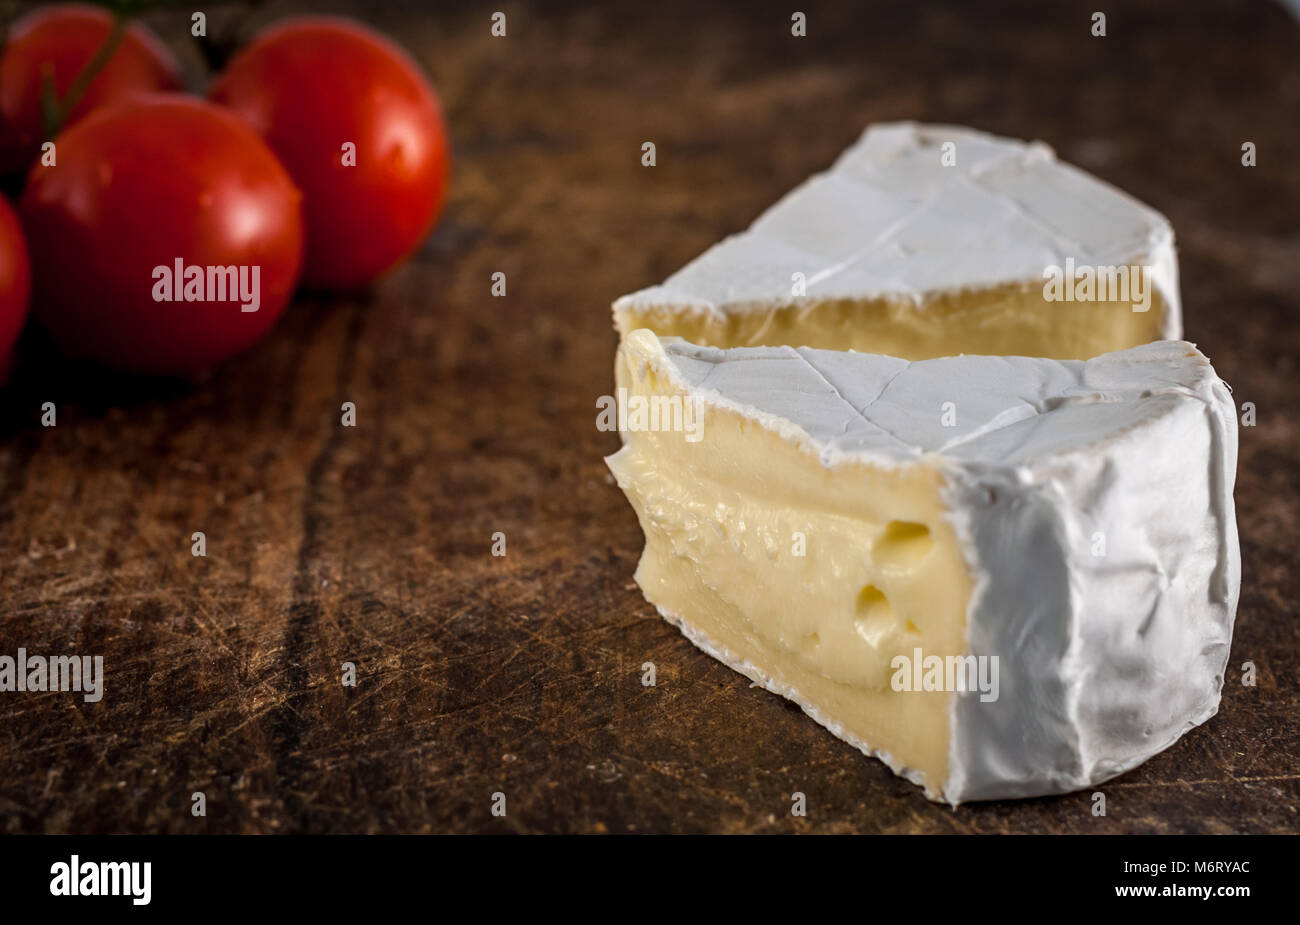 Closeup of brie cheese and cherry tomatoes on wooden chopping board - Stock Image